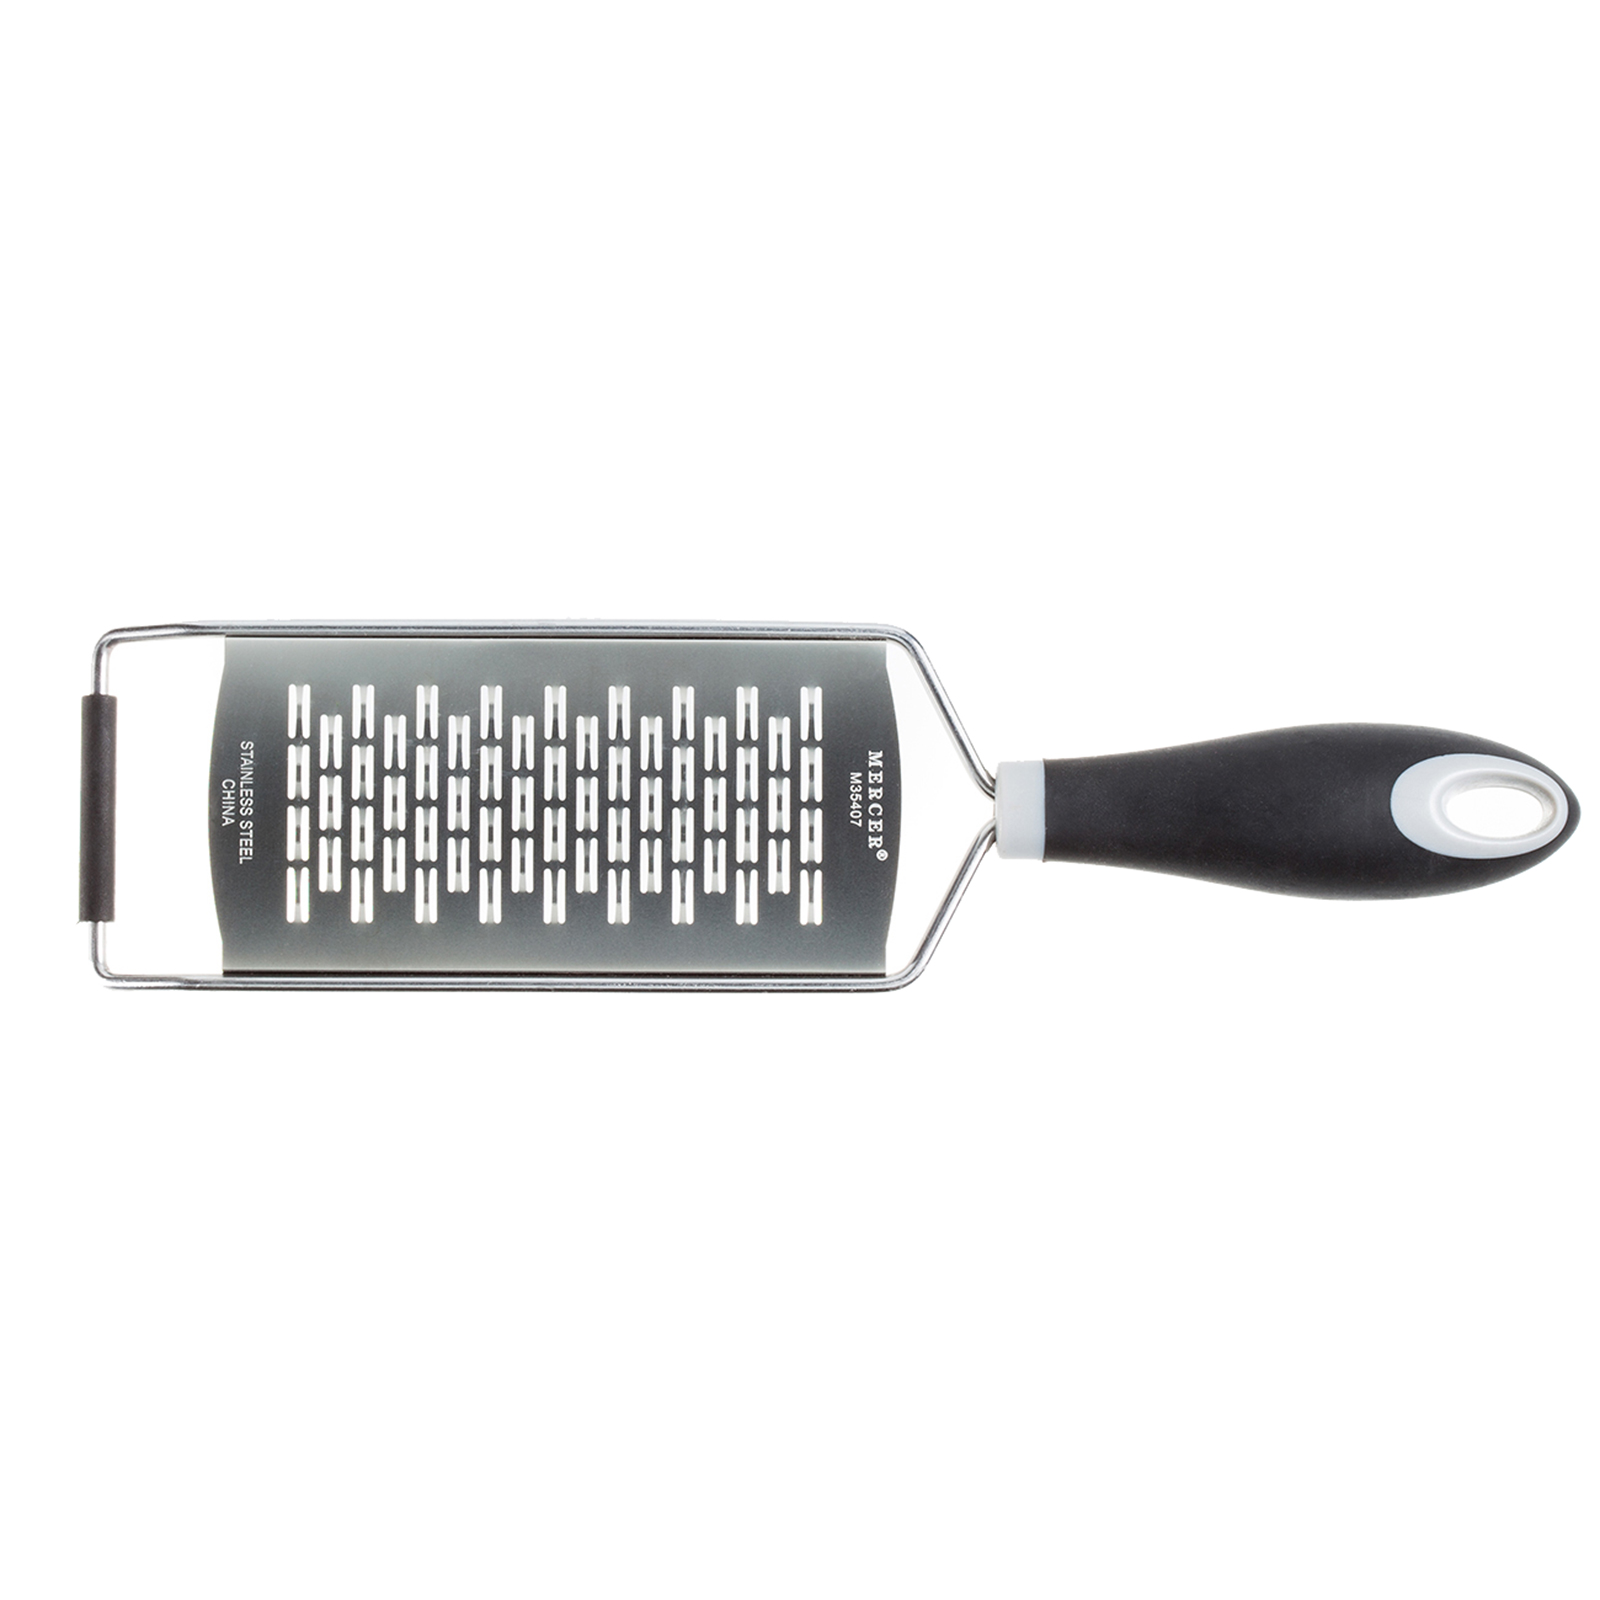 Mercer Culinary M35407 grater, manual